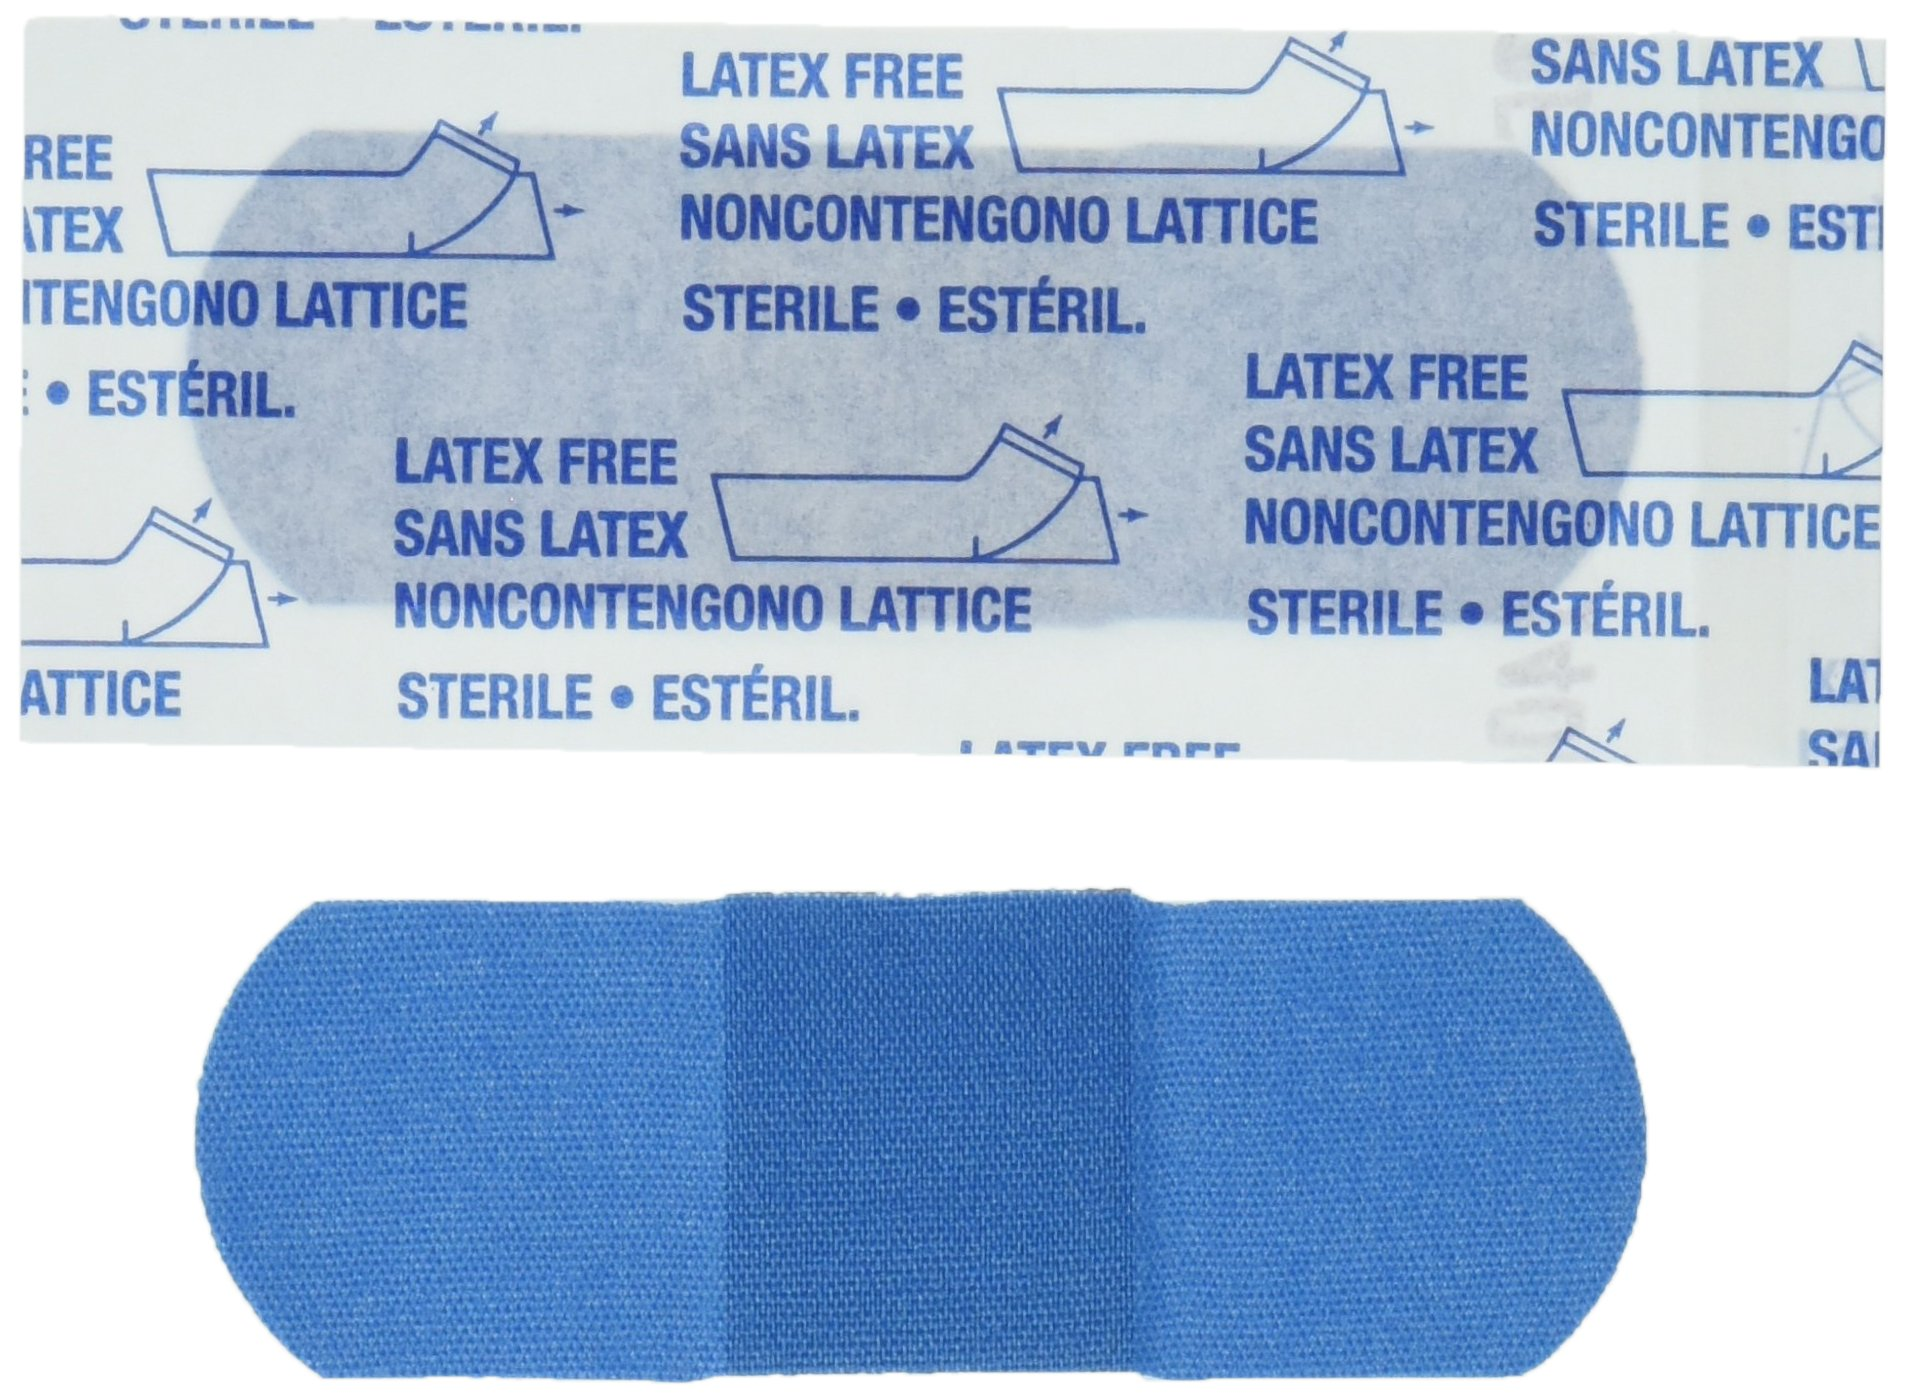 American White Cross 1631025 Blue Metal Detectable Adhesive Strips, Sterile, Lightweight 1'' x 3'' Bulk, 130 per Case, 10 Tray per Case (Pack of 1300)